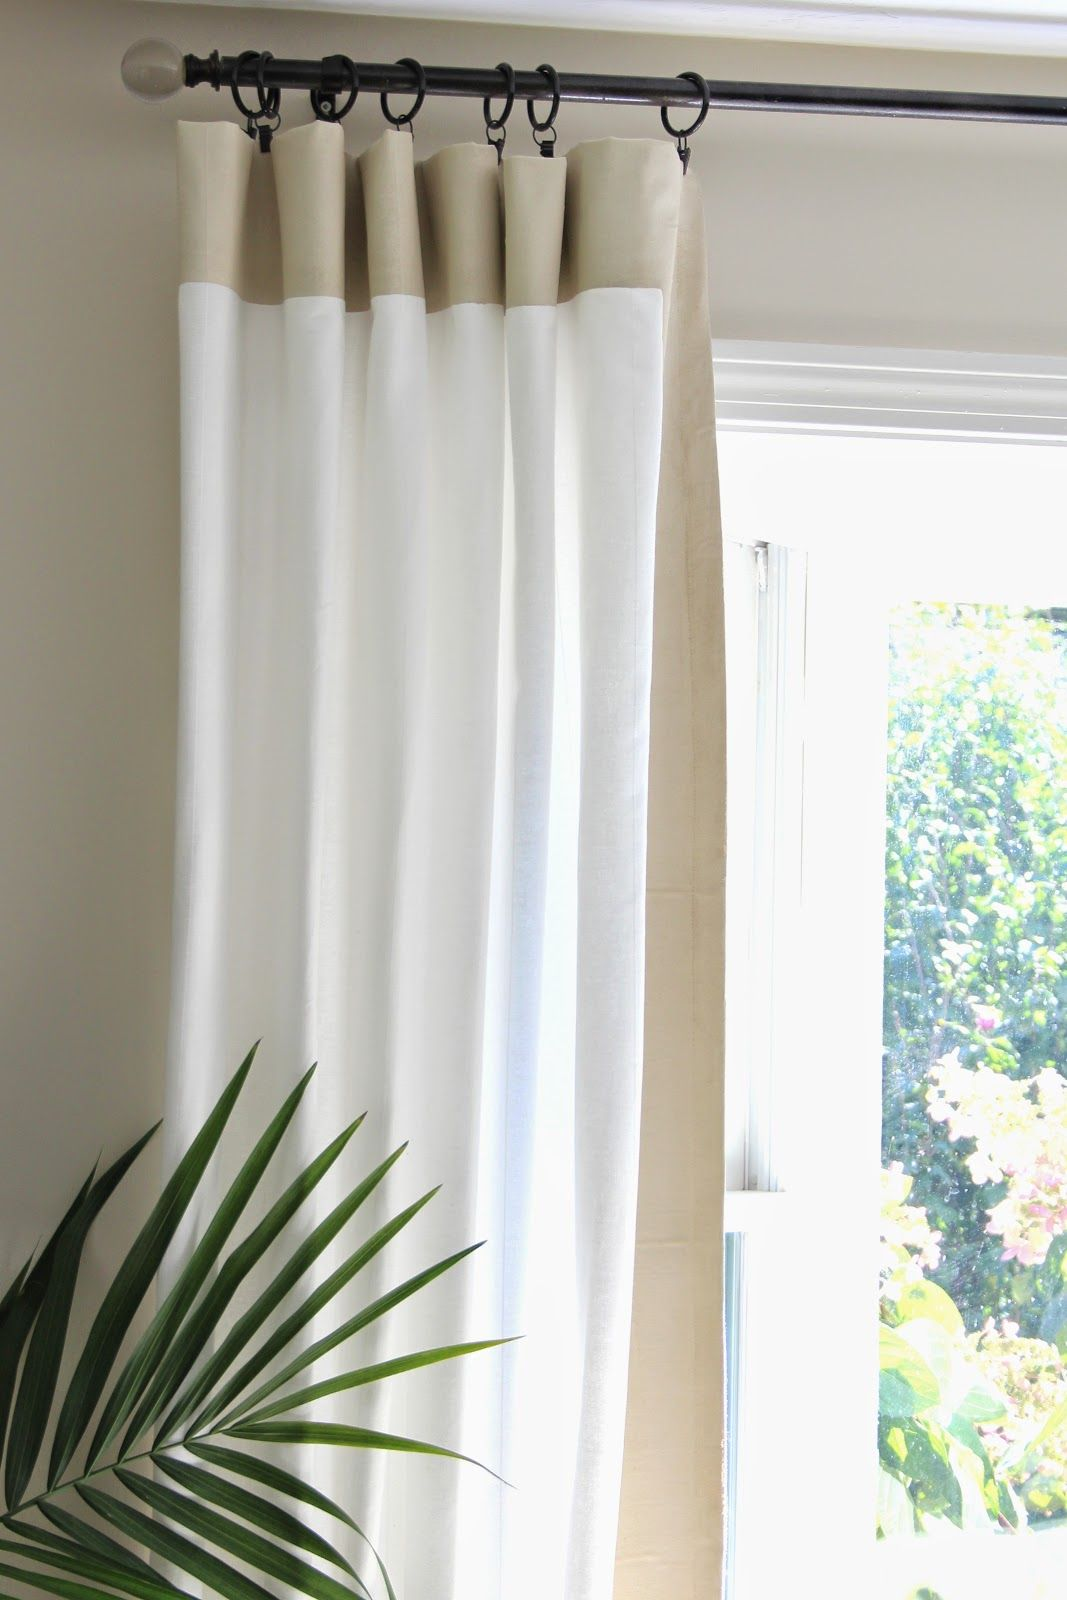 Design ikea cortinas de puertas : Savvy Southern Style: Favorite Room.....Shine Your Light. Our ...